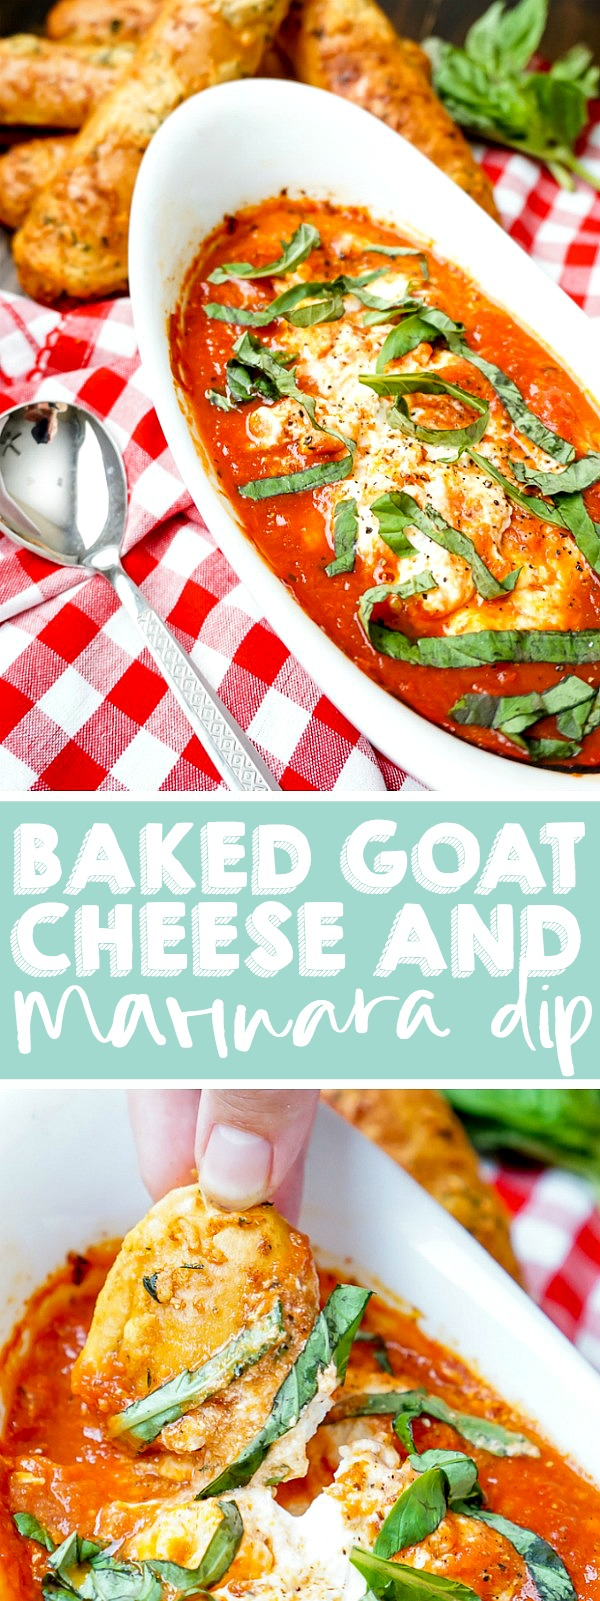 My favorite restaurant appetizer is easy to recreate at home with this copy cat recipe! It's warm, flavorful, cheesy and downright addicting! Serve this warm dip alongside crostini, fresh bread, crackers or, my personal favorite, warm bread sticks!  | THE LOVE NERDS #warmdiprecipe #marinaradip #goatcheeseappetizer #christmasappetizer #newyearsappetizer #thanksgivingappetizer